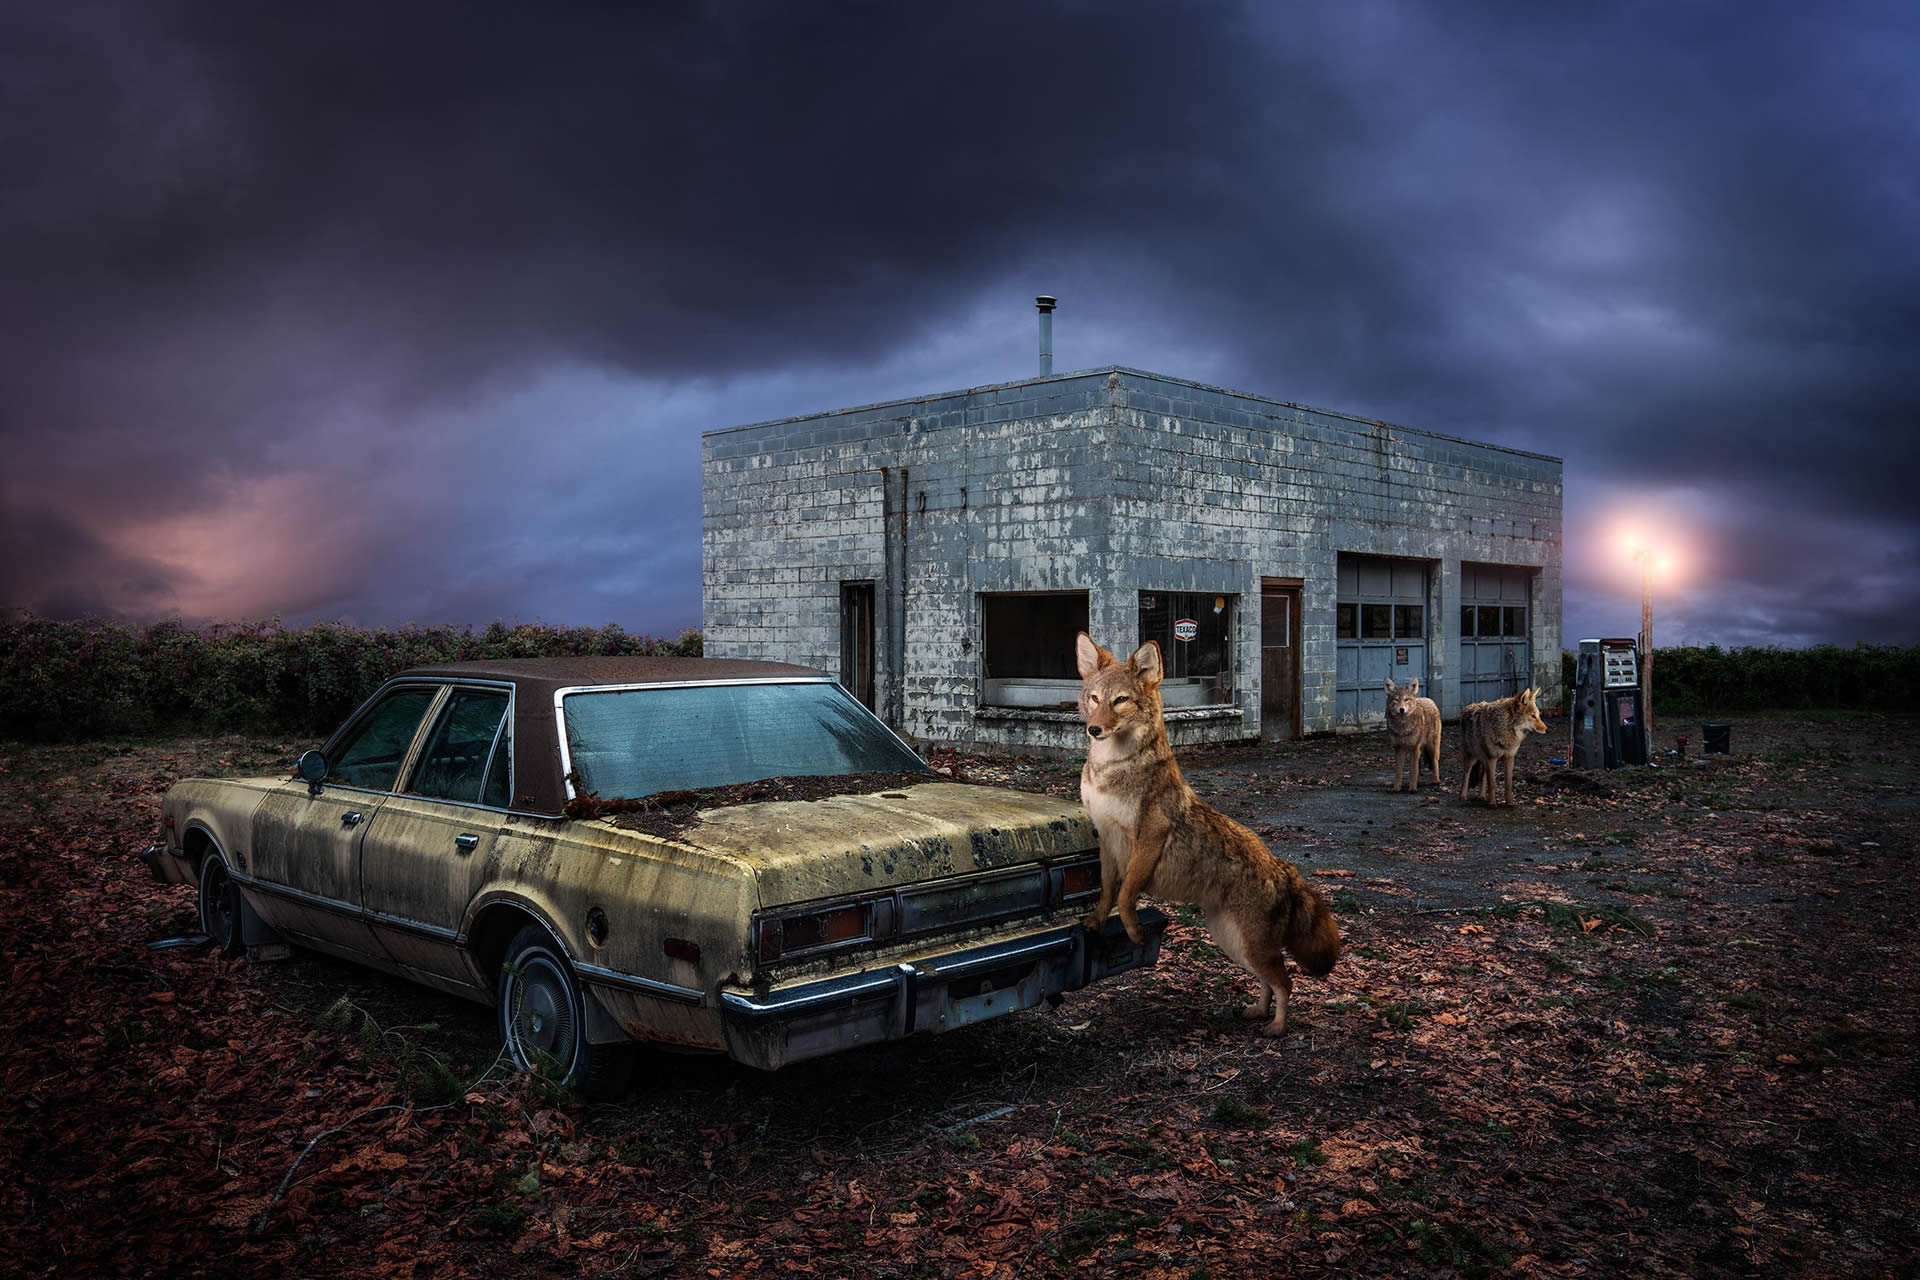 Kevin-Lanthier-Lone-Coyotes-Online-Art-Galleries